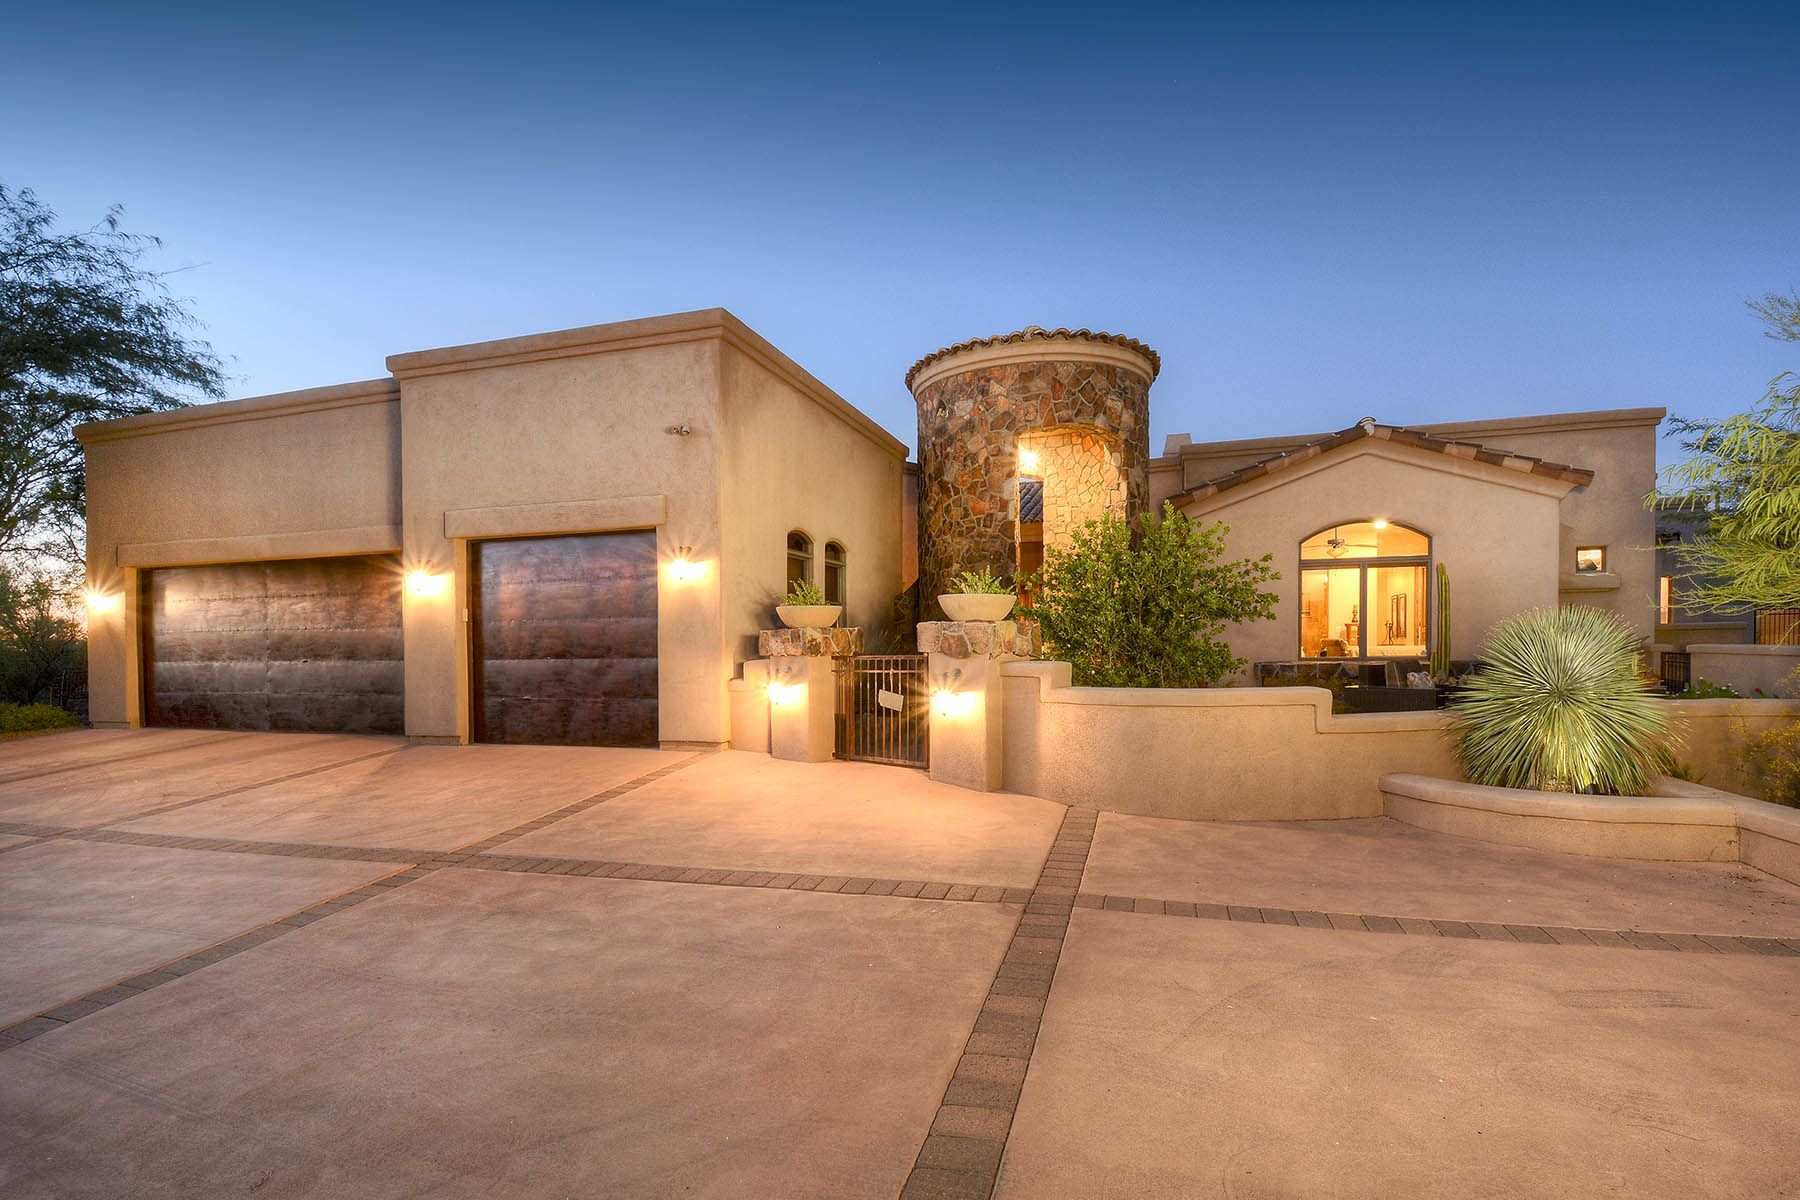 Single Family Homes for Active at Welcome to Your Oasis in the Desert! 12798 N Sorrel Stallion Place Marana, Arizona 85658 United States